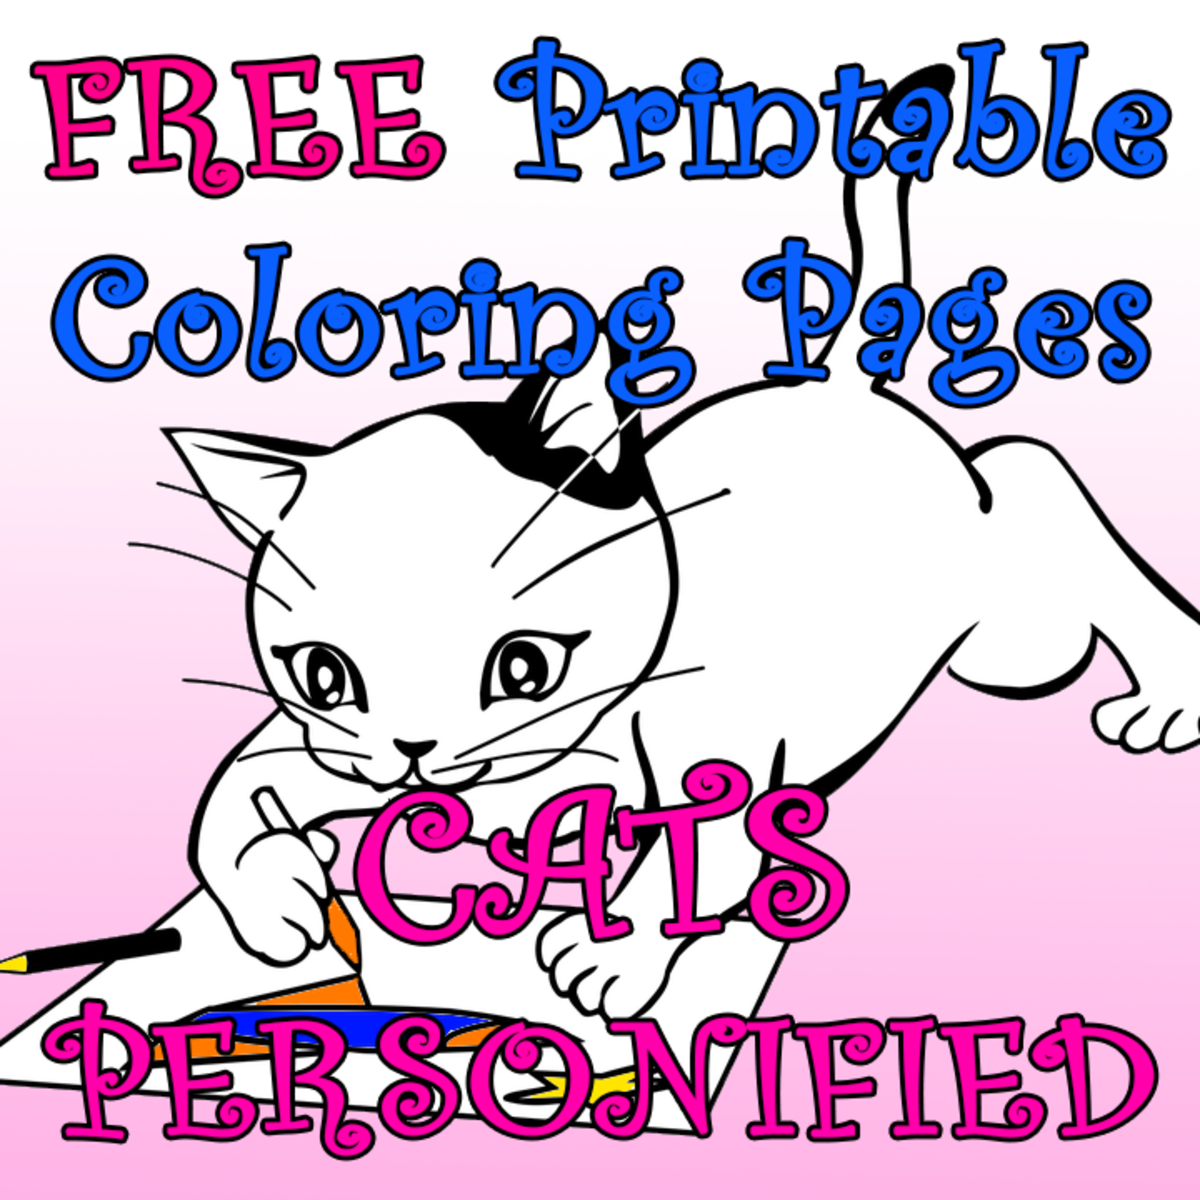 Cats Personified 10 Free Printable Coloring Pages For Kids Feltmagnet Crafts